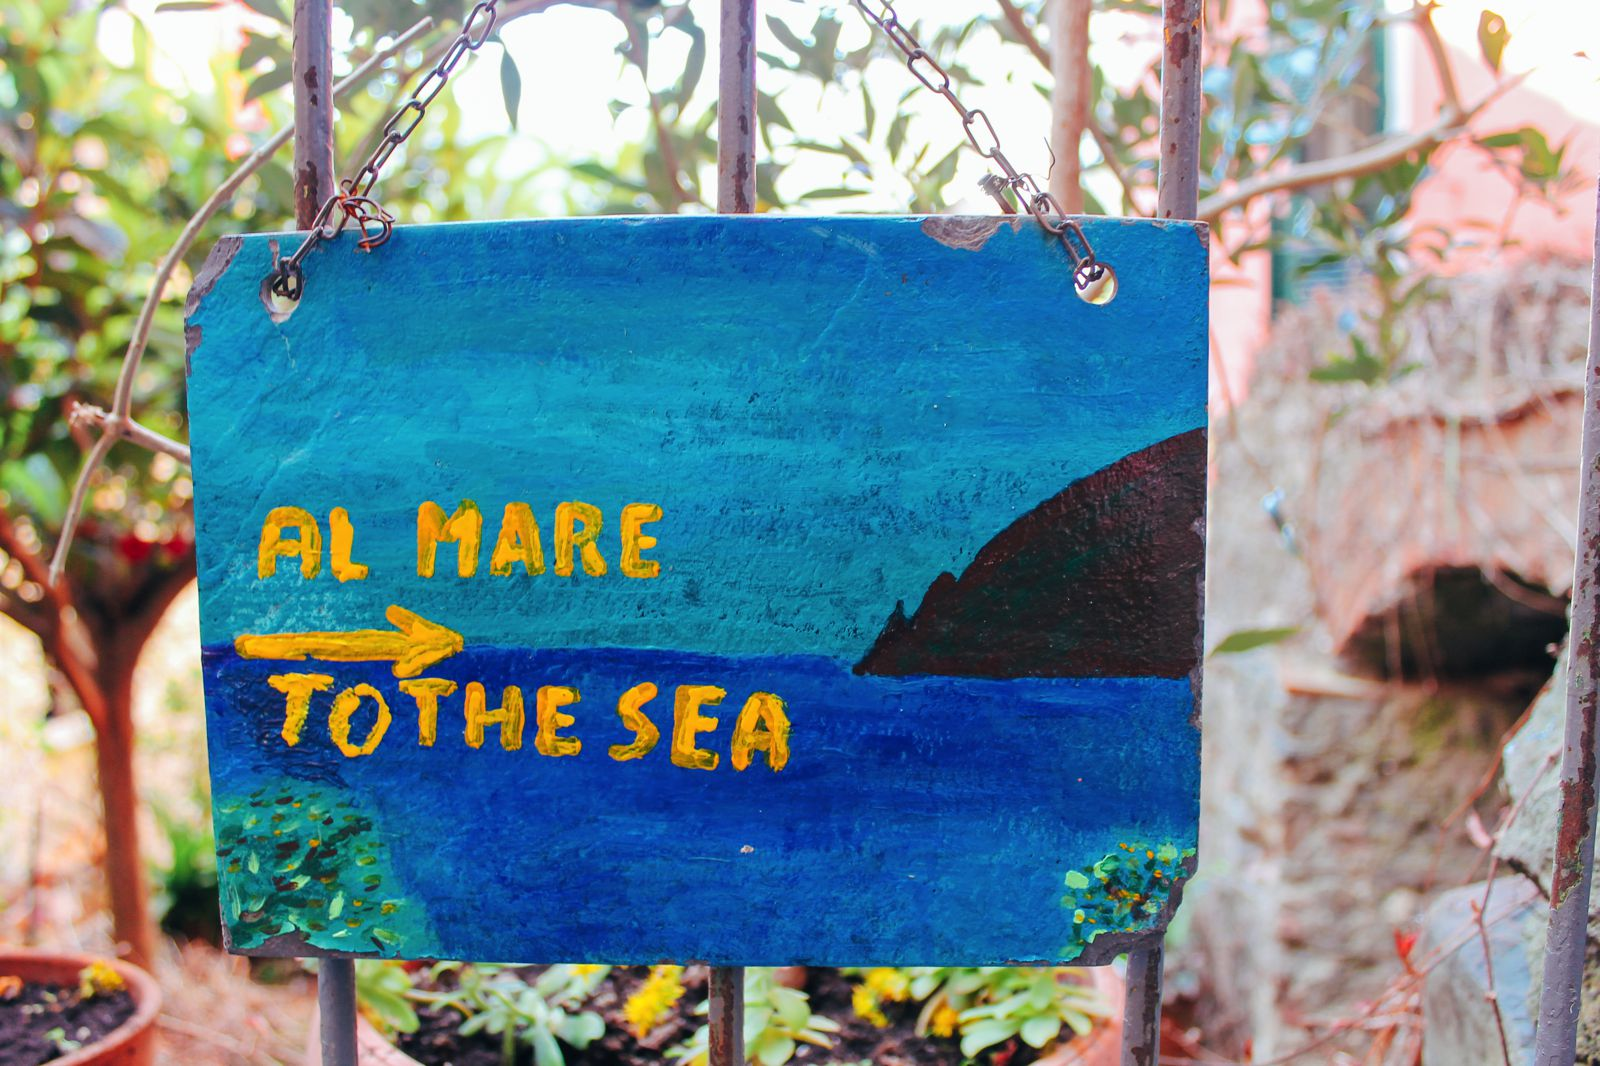 Corniglia in Cinque Terre, Italy - The Photo Diary! [3 of 5] (8)